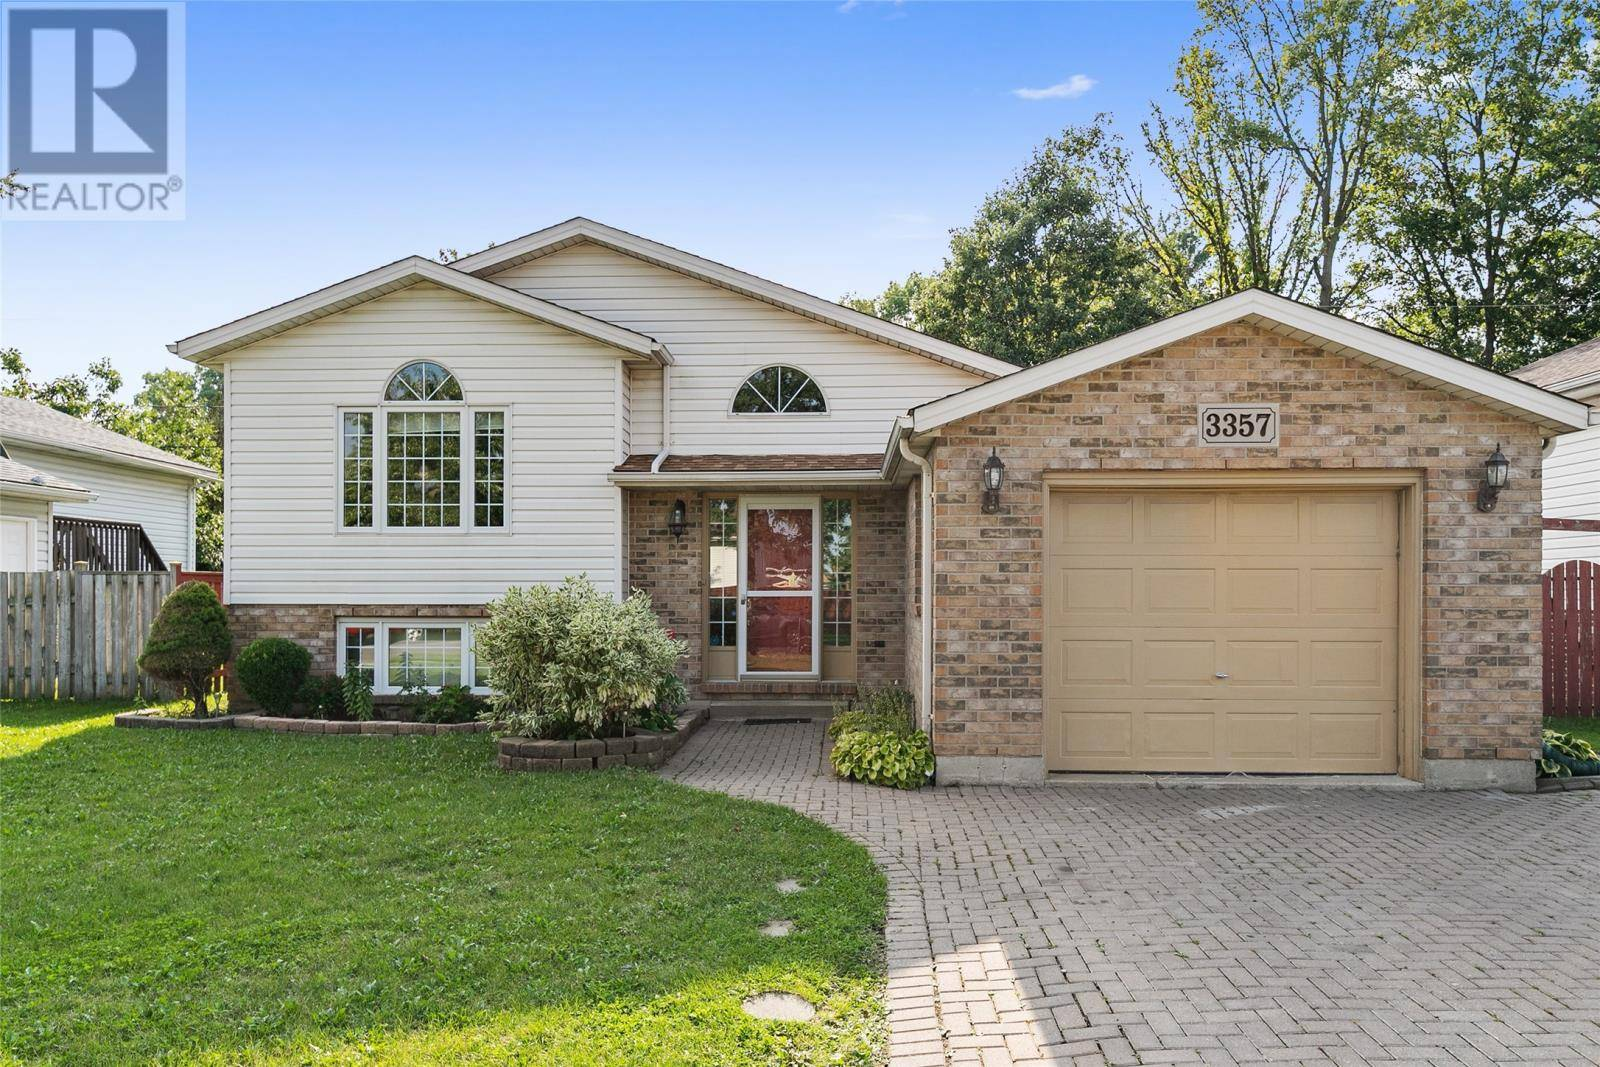 House for sale at 3357 Conservation Dr Windsor Ontario - MLS: 19025471